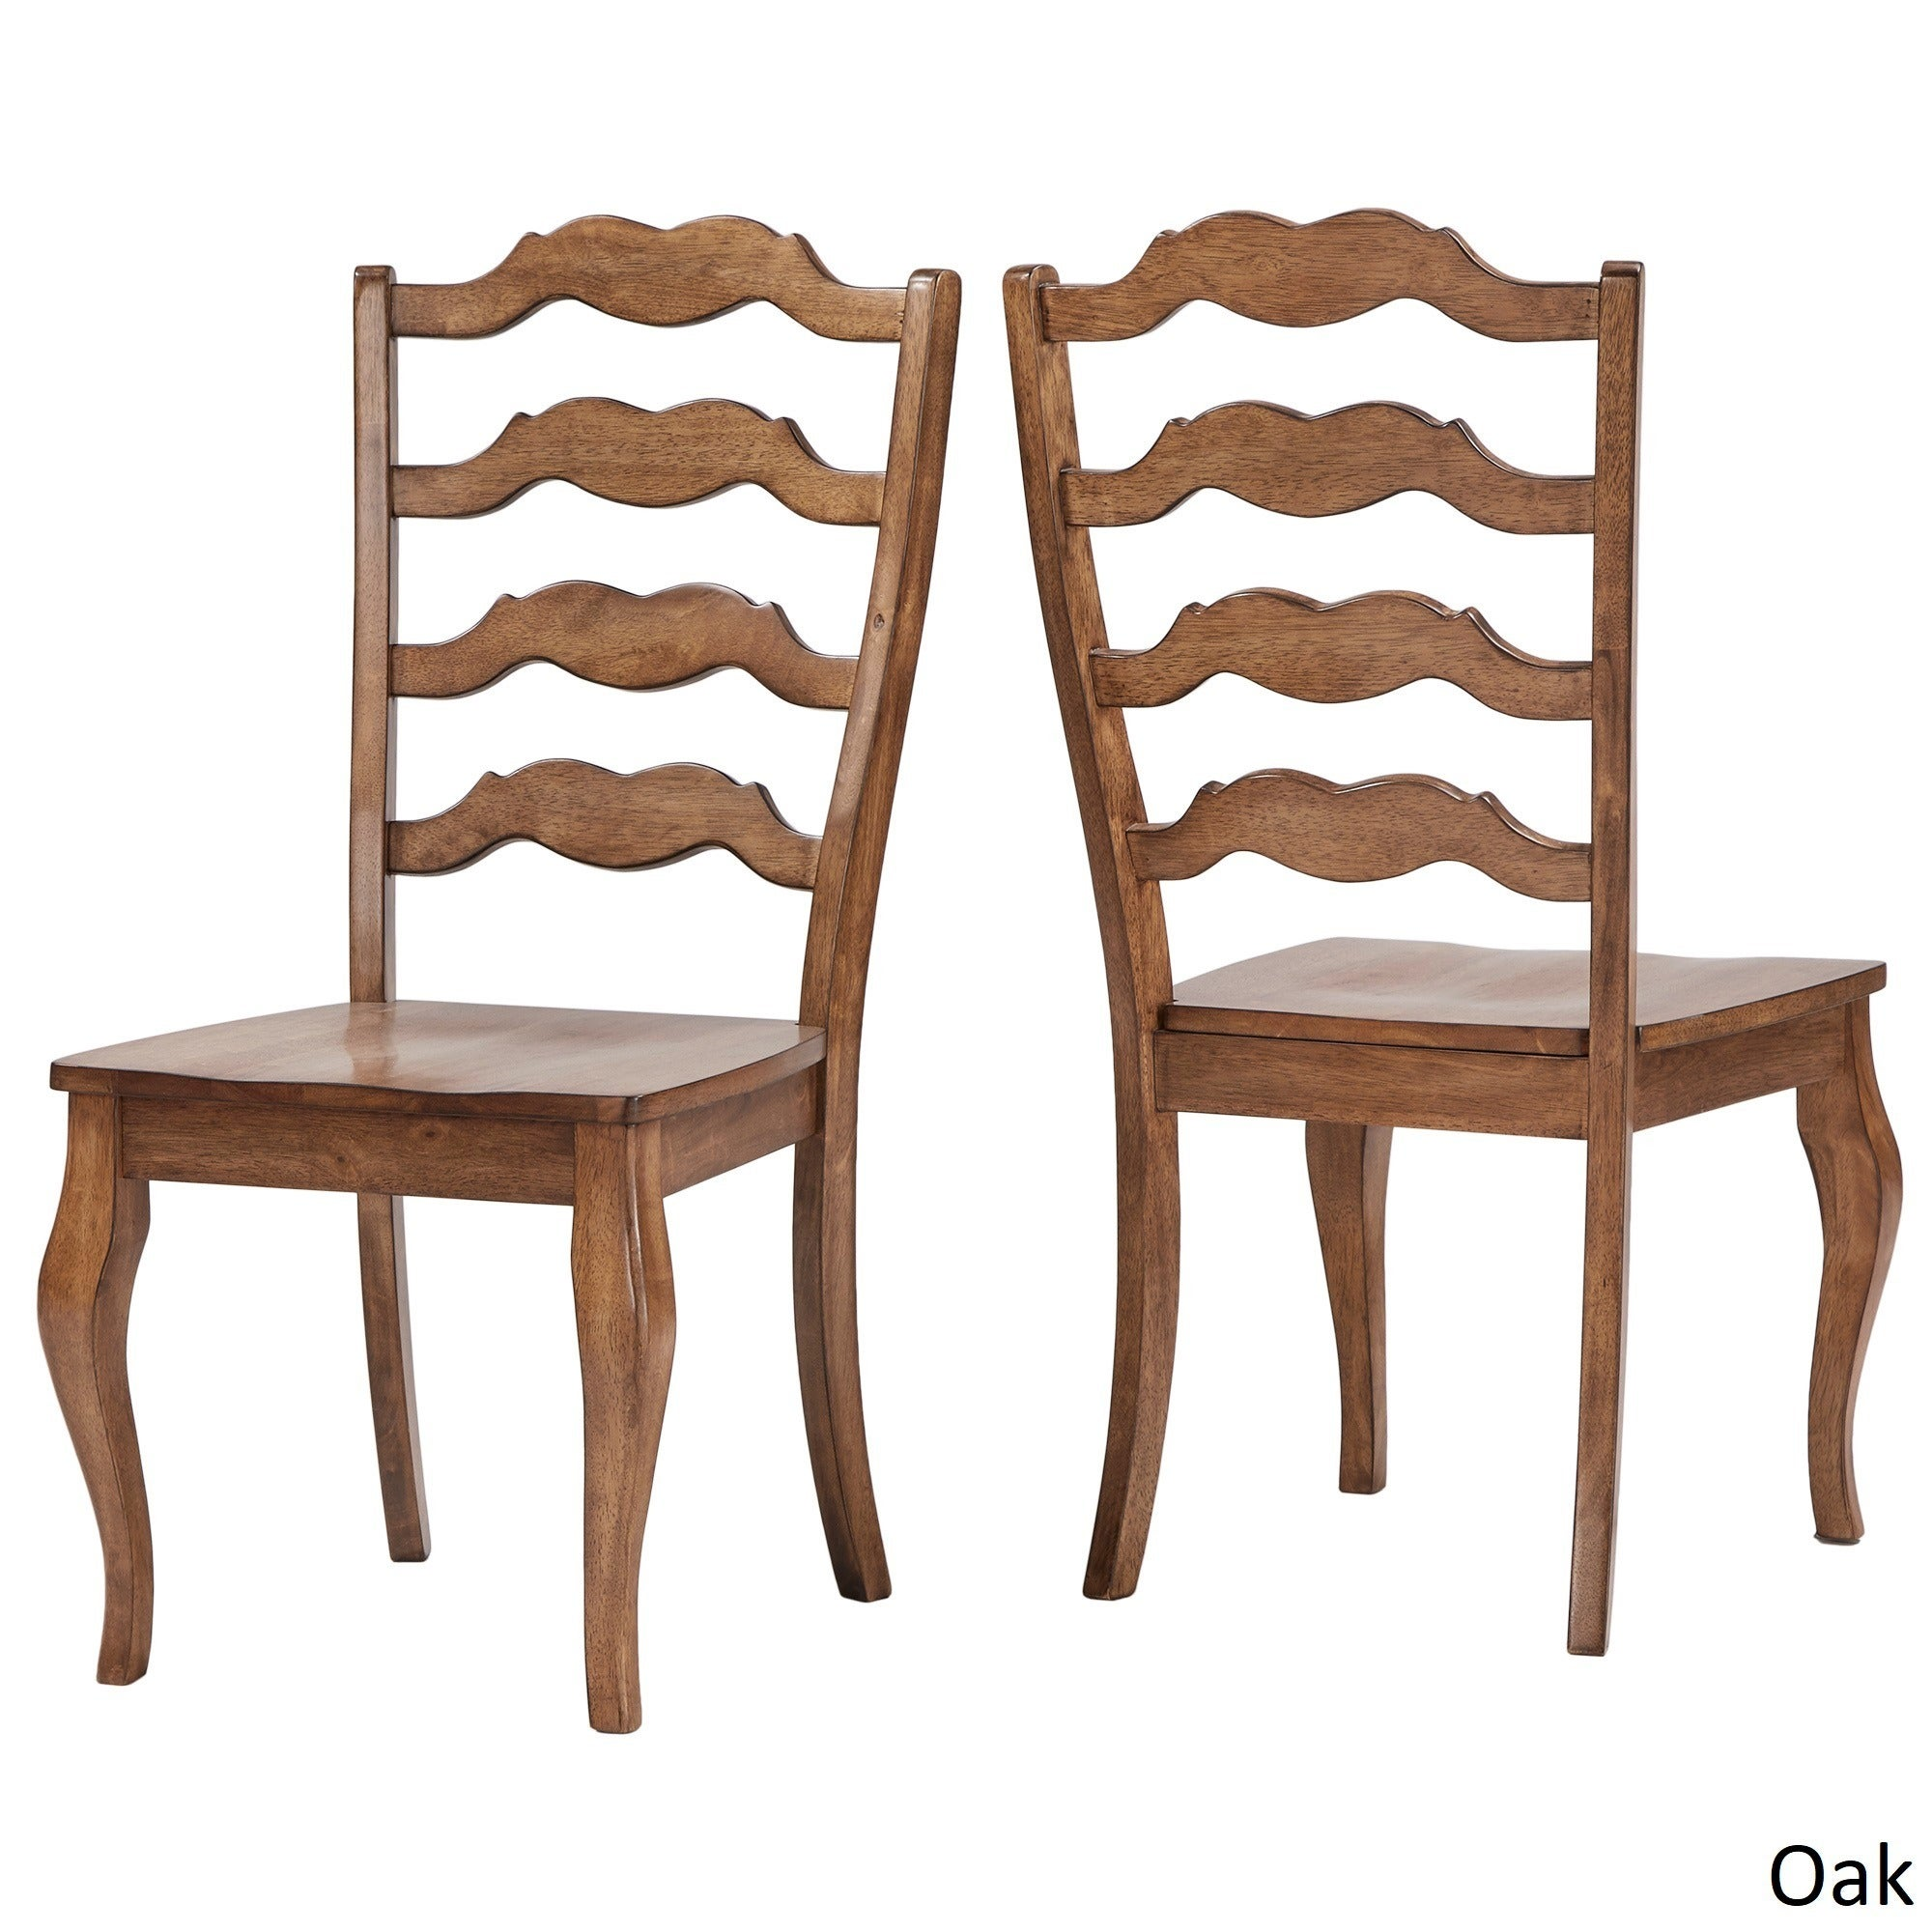 b5c3eb8091bc Shop Eleanor French Ladder Back Wood Dining Chair (Set of 2) by iNSPIRE Q  Classic - On Sale - Free Shipping Today - Overstock - 13477165